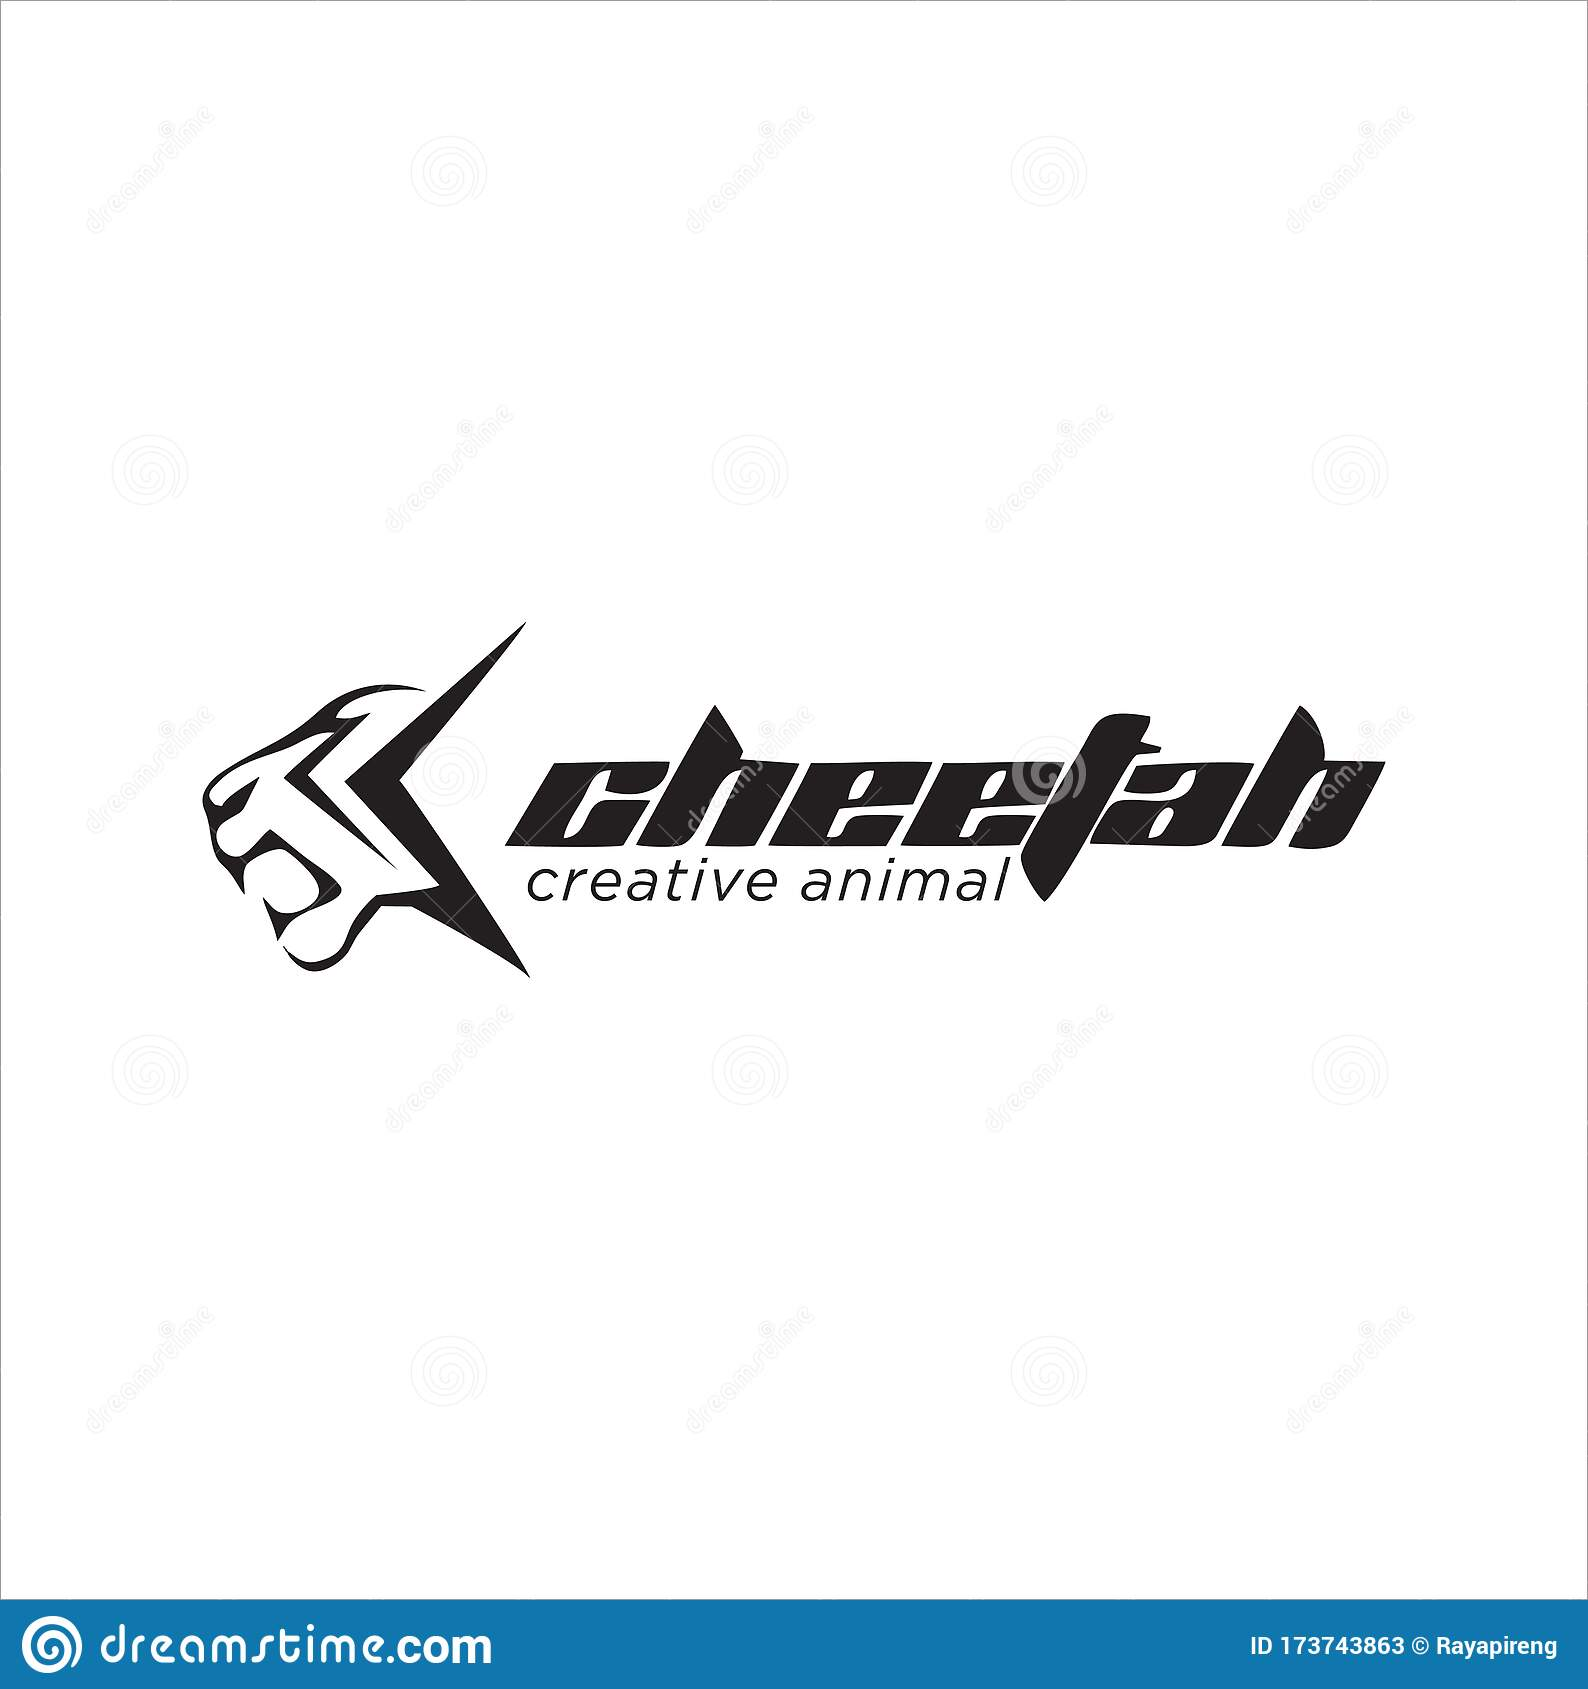 simple abstract cheetah logo design silhouette stock cheetah head logo vector illustration stock vector illustration of cheetah concept 173743863 dreamstime com